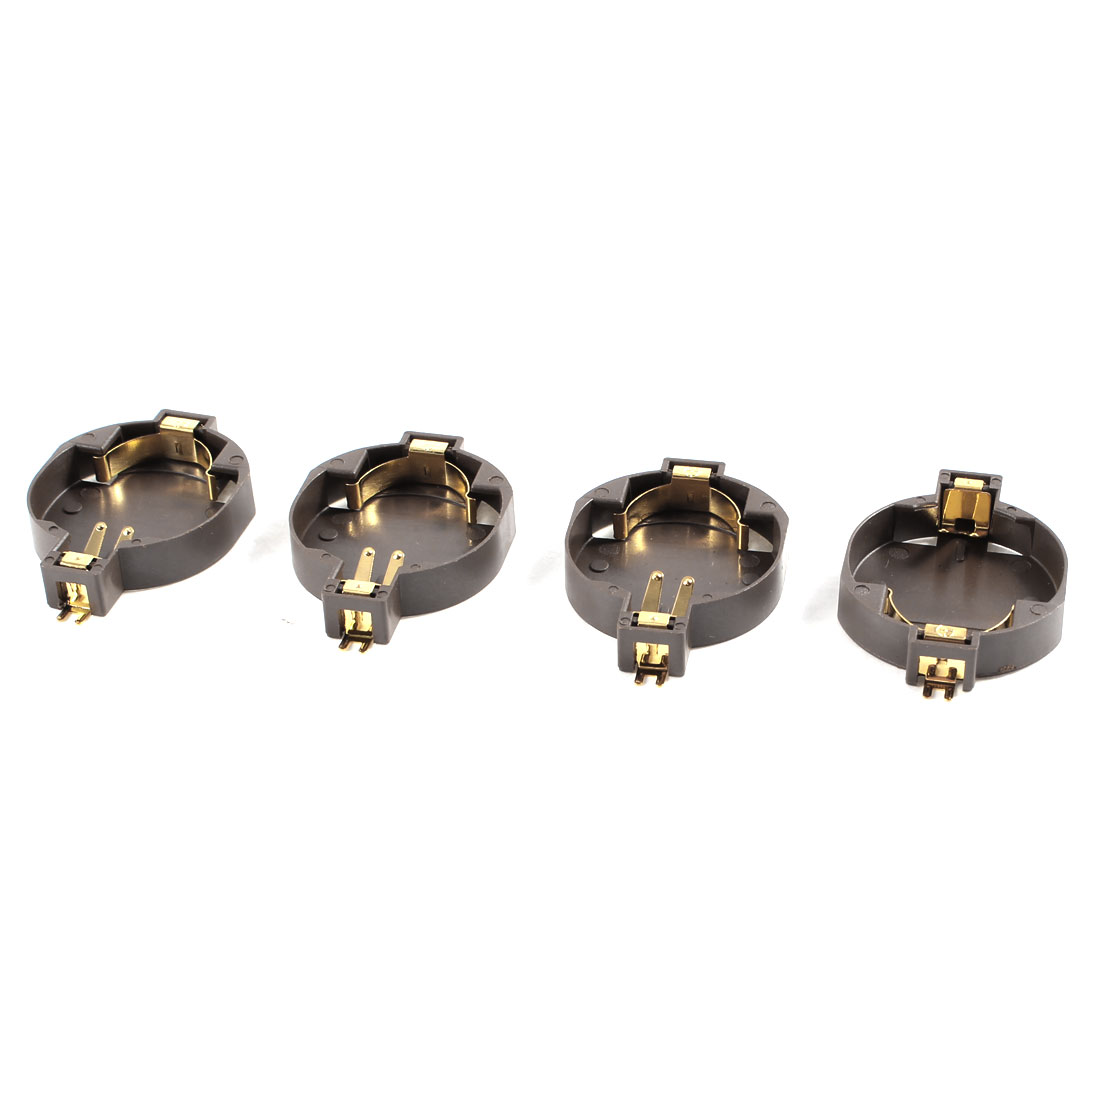 4 Pieces Brown Plastic Button Coin Cell Battery Sockets Holder for CR2032